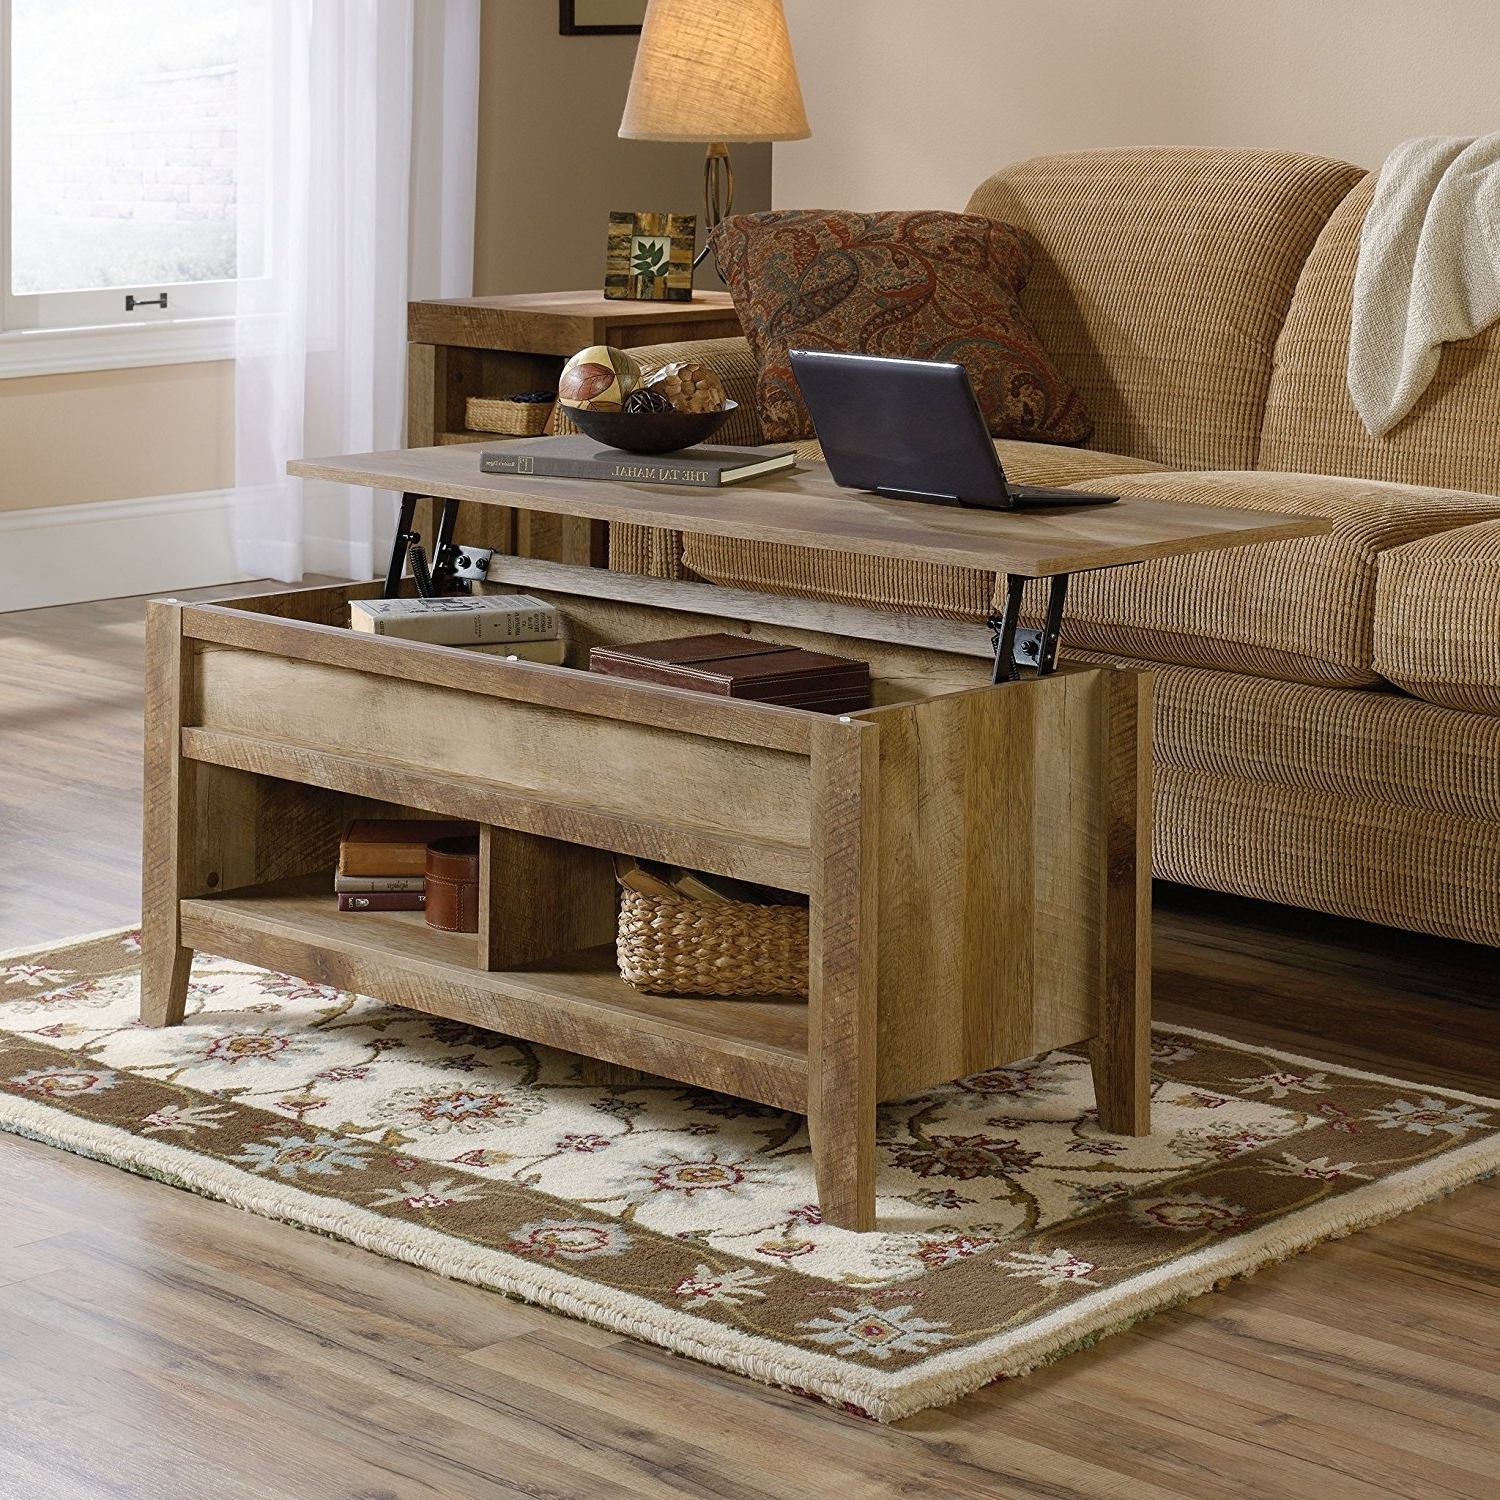 Top 10 Best Lift Top Coffee Tables In 2018 – Toptenreviewpro Pertaining To Popular Market Lift Top Cocktail Tables (View 19 of 20)